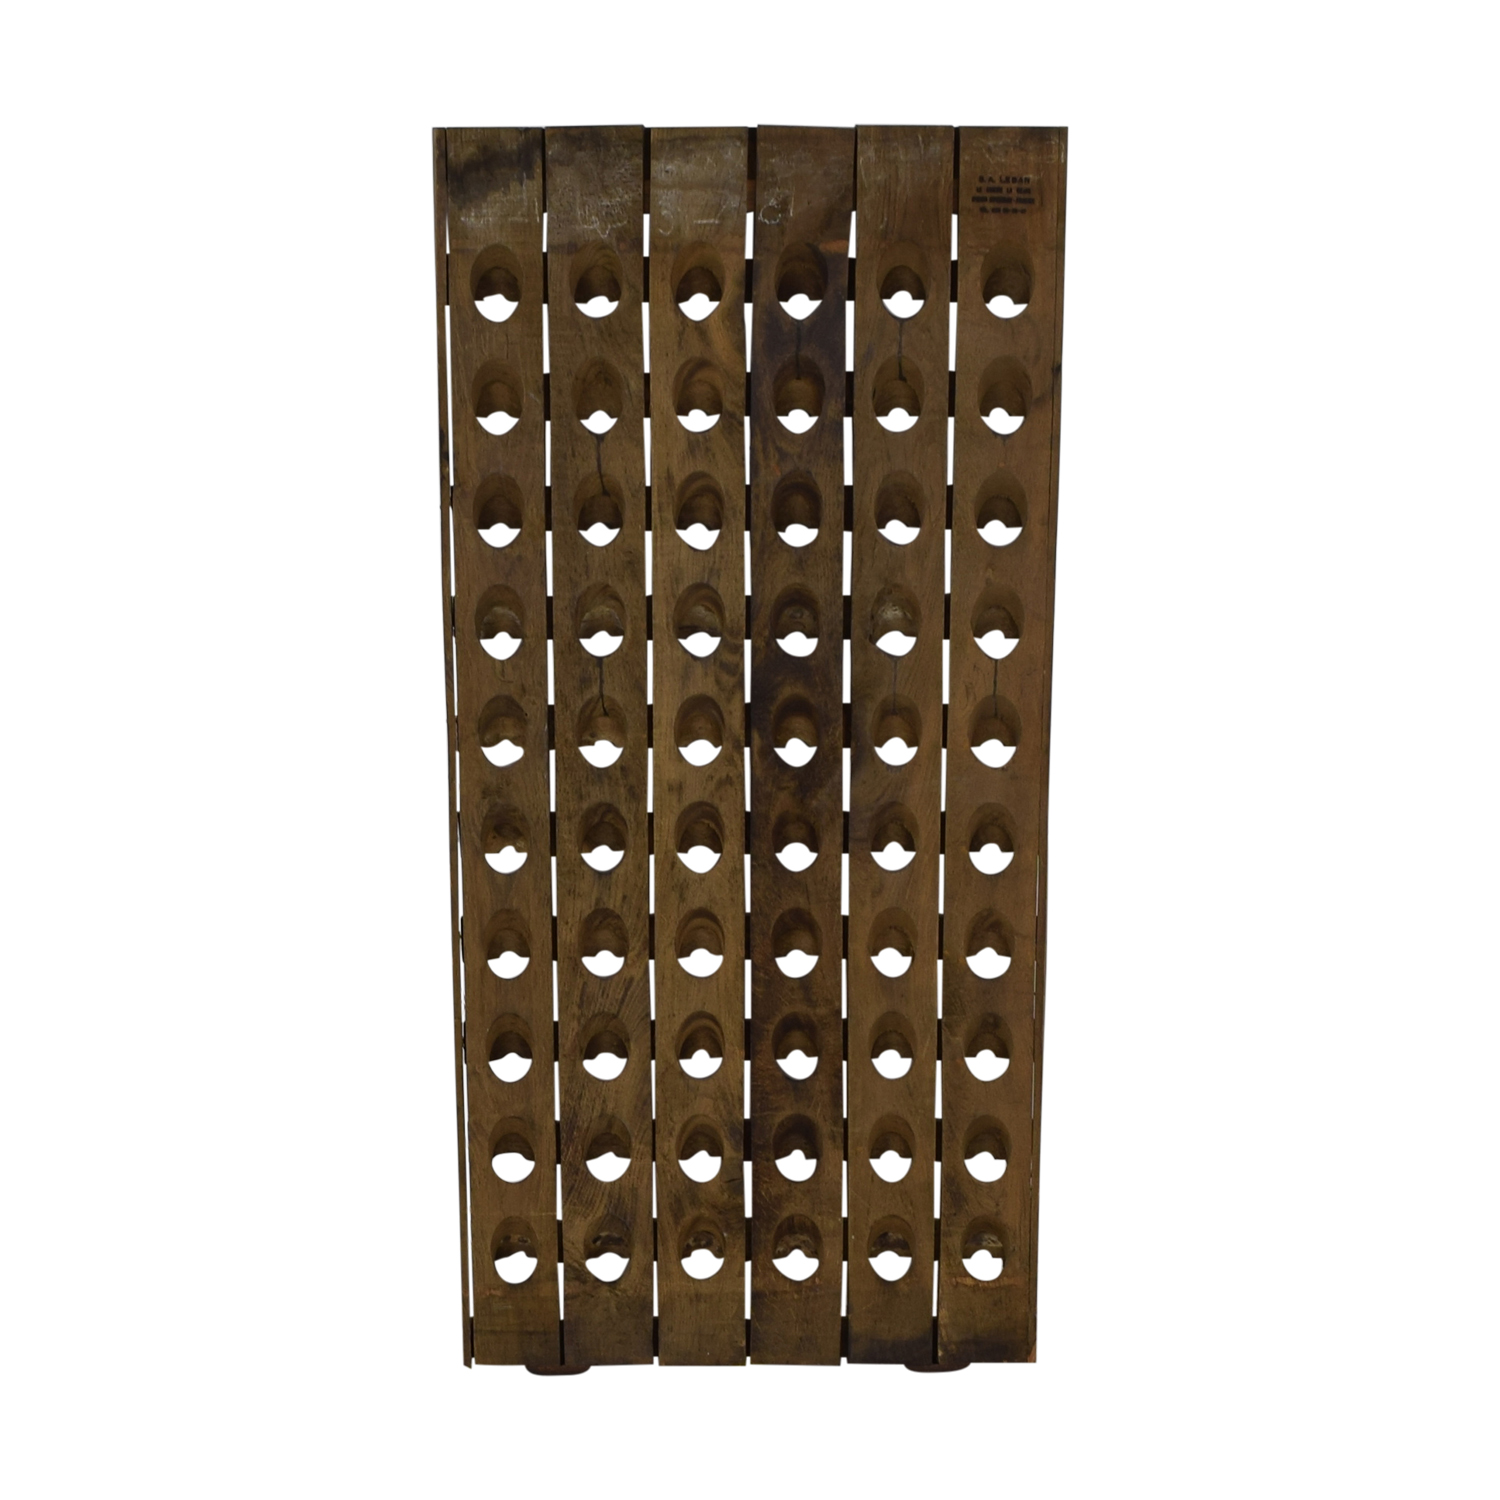 Decorative Riddling Wine Rack Sundance